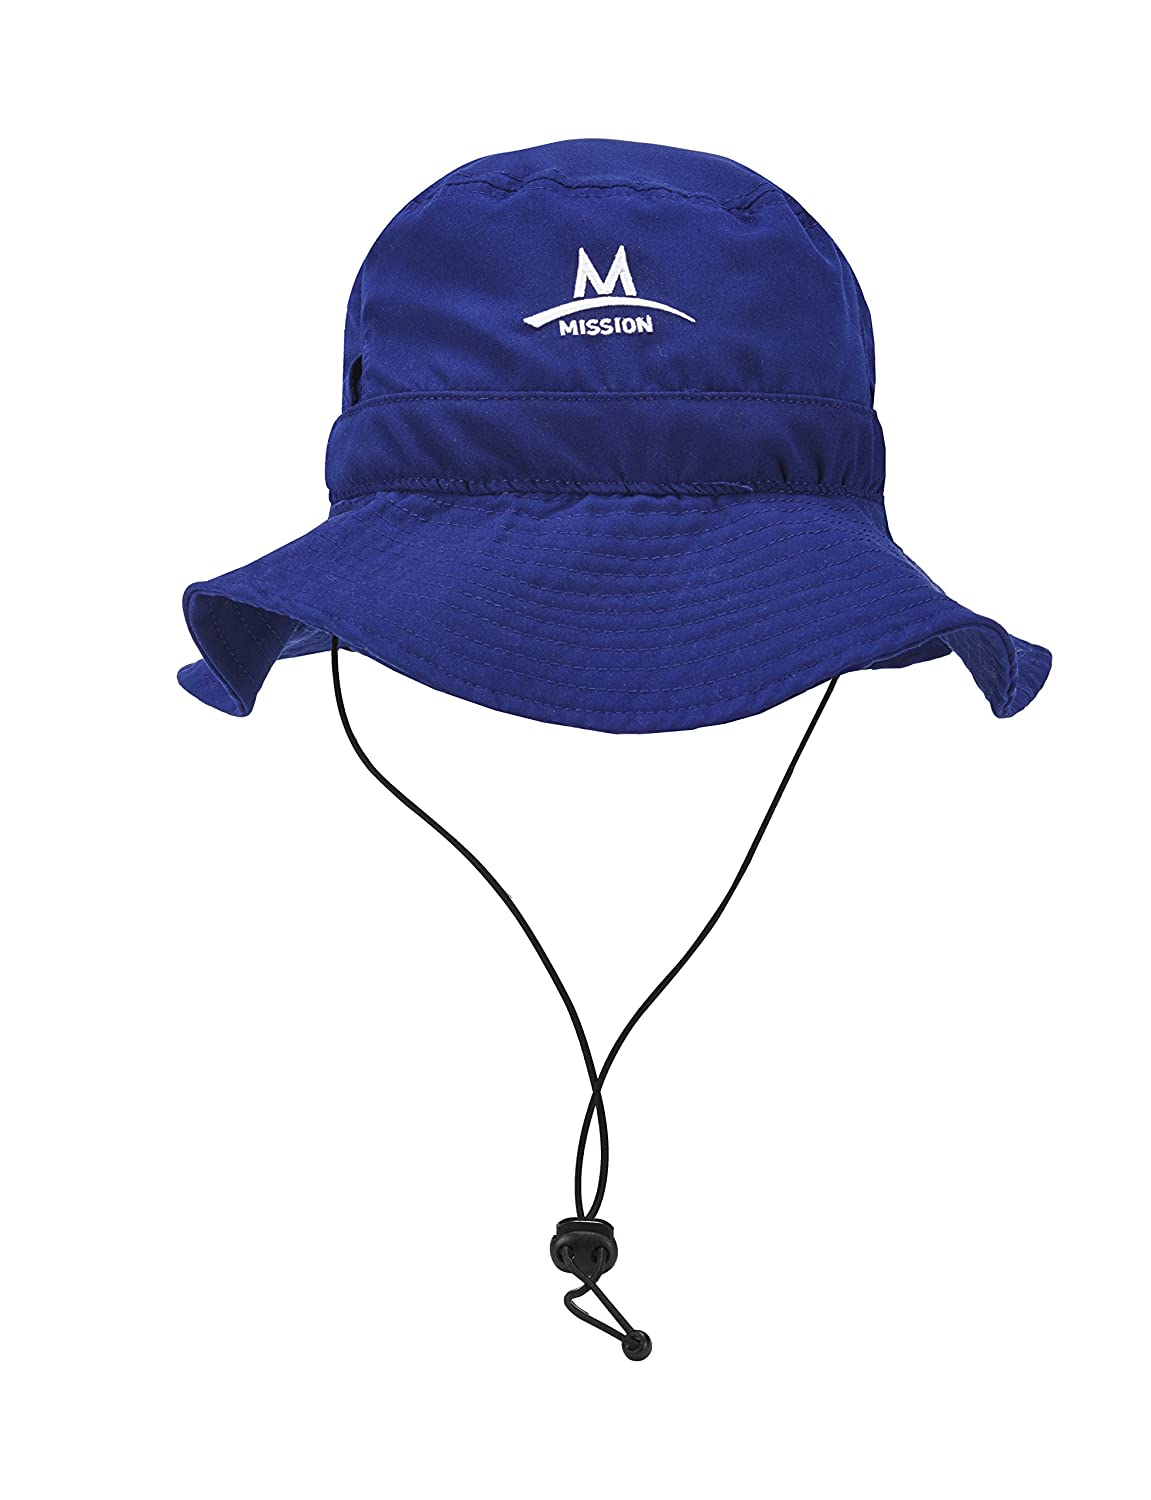 Mission Cooling Bucket Hat